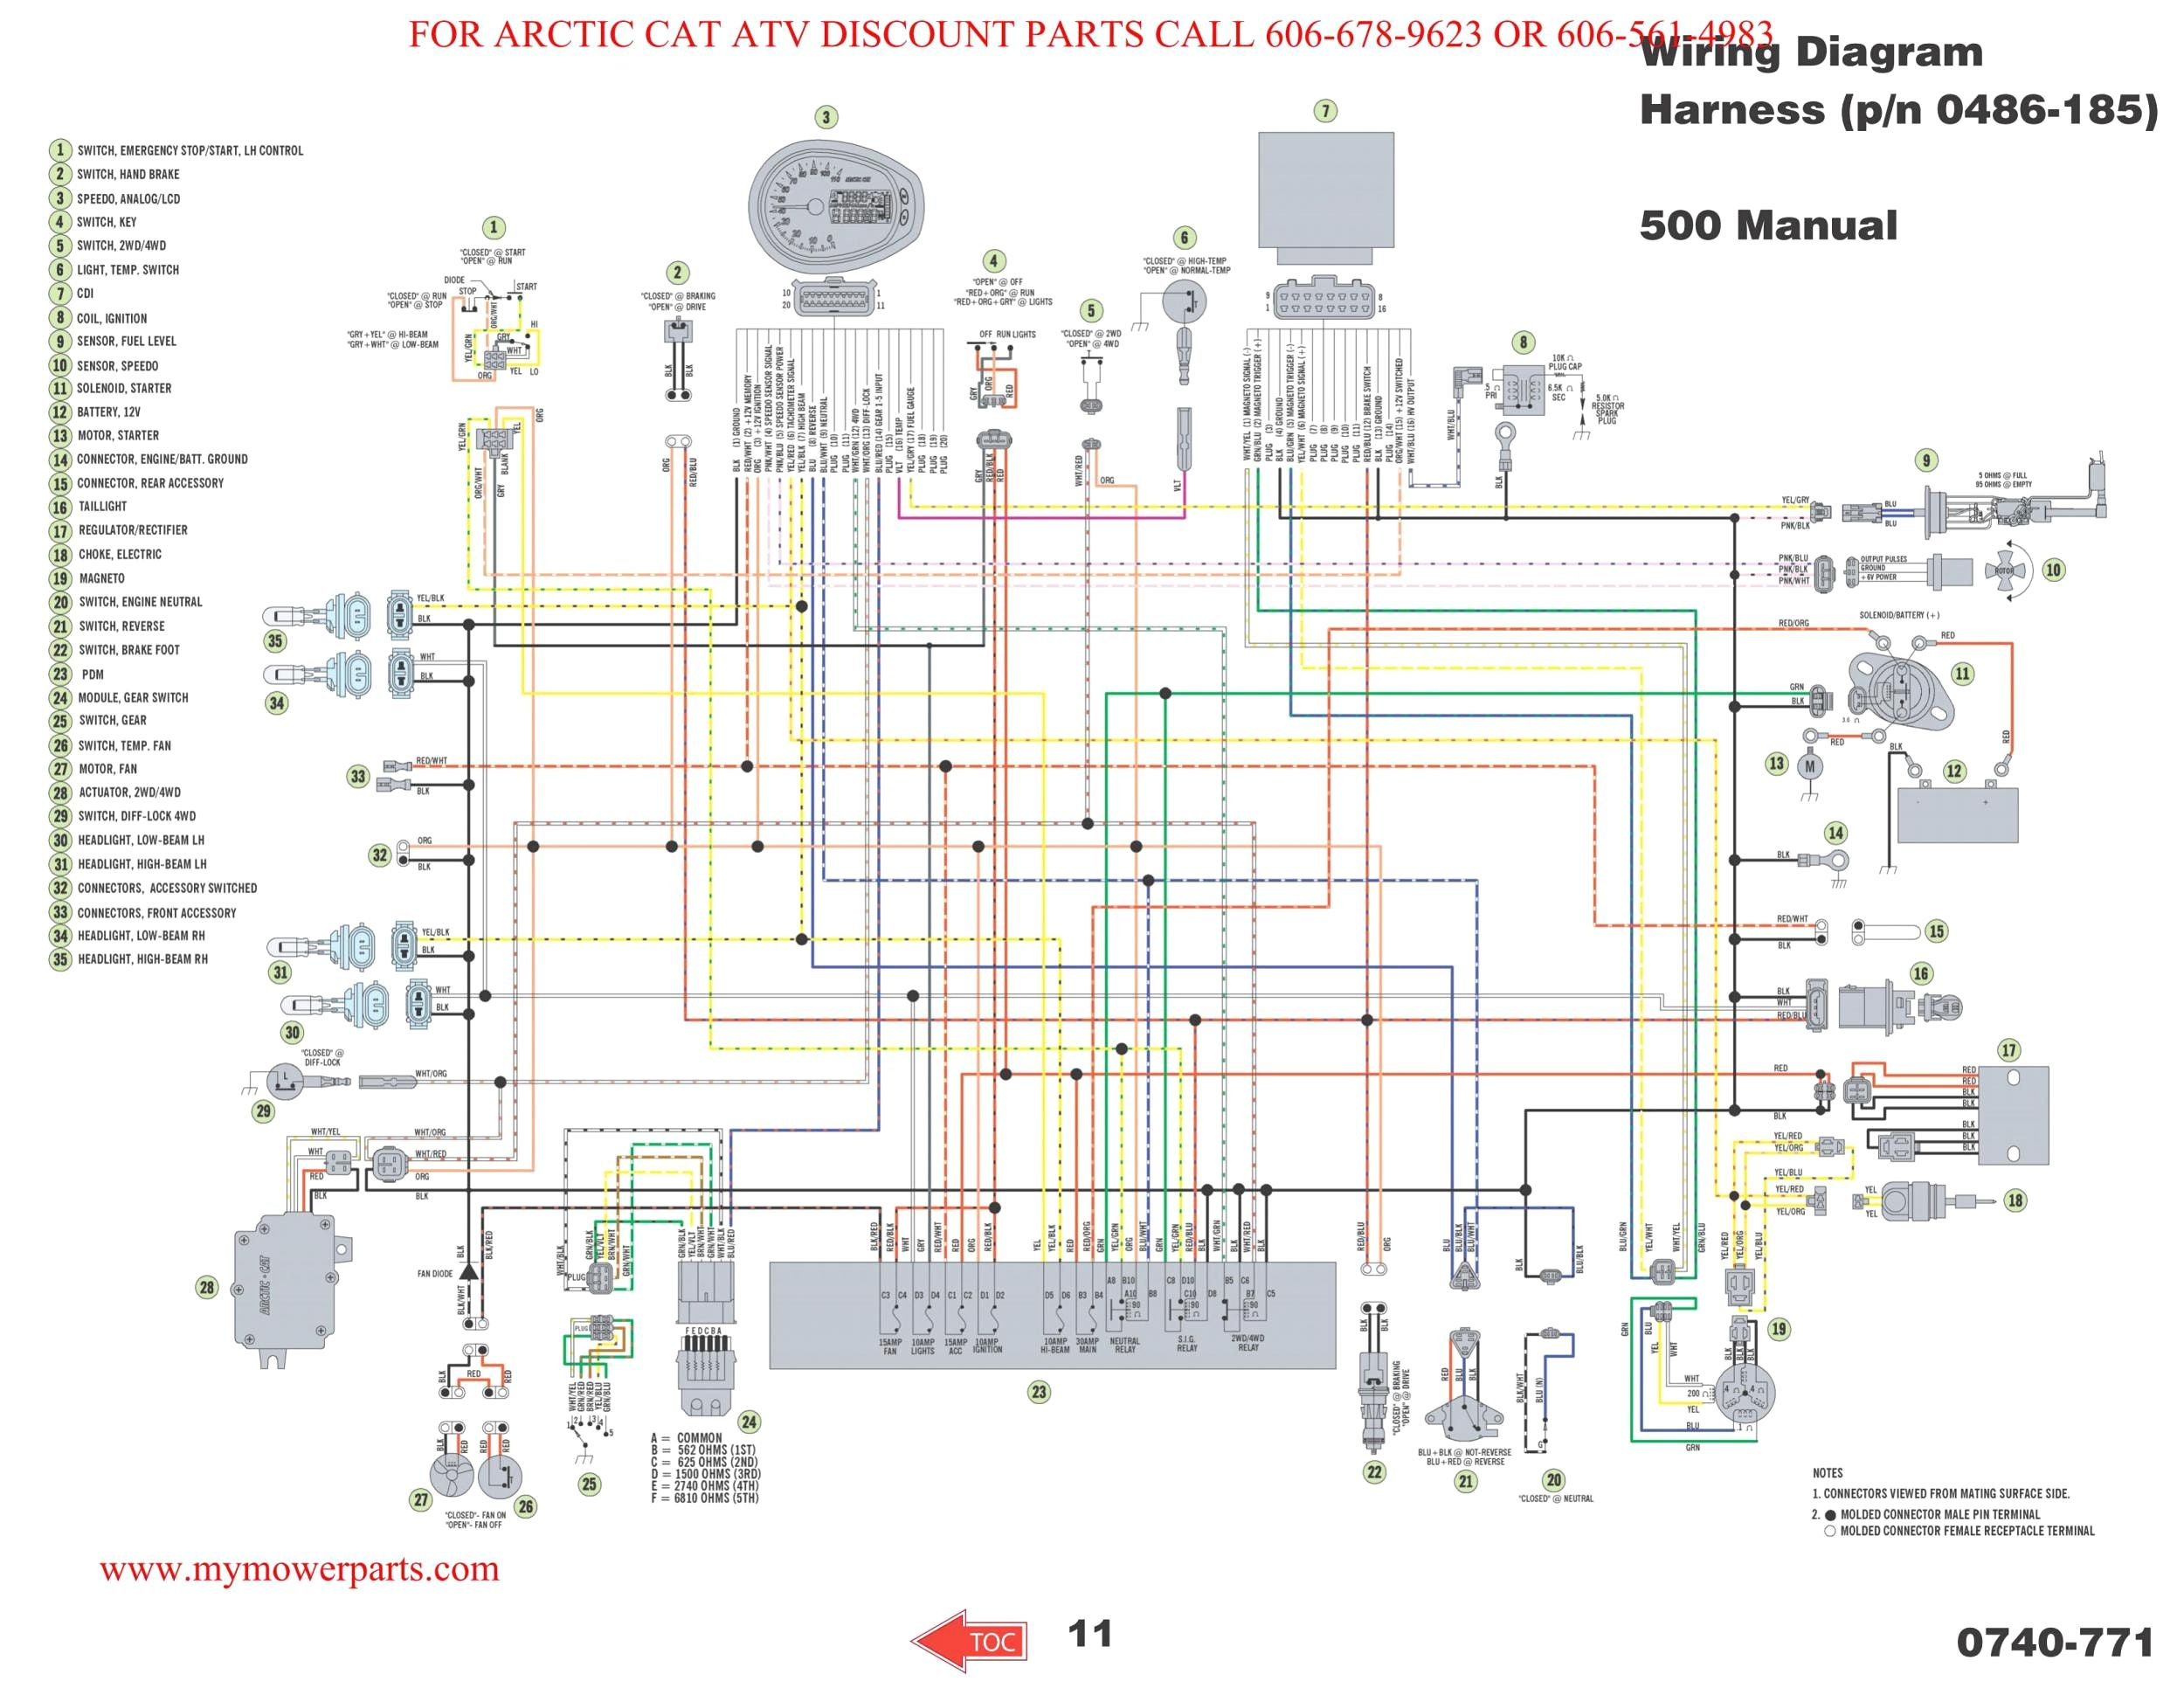 Polaris Ranger 500 Wiring Diagram In 2020 Diagram Polaris Ranger Diagram Chart